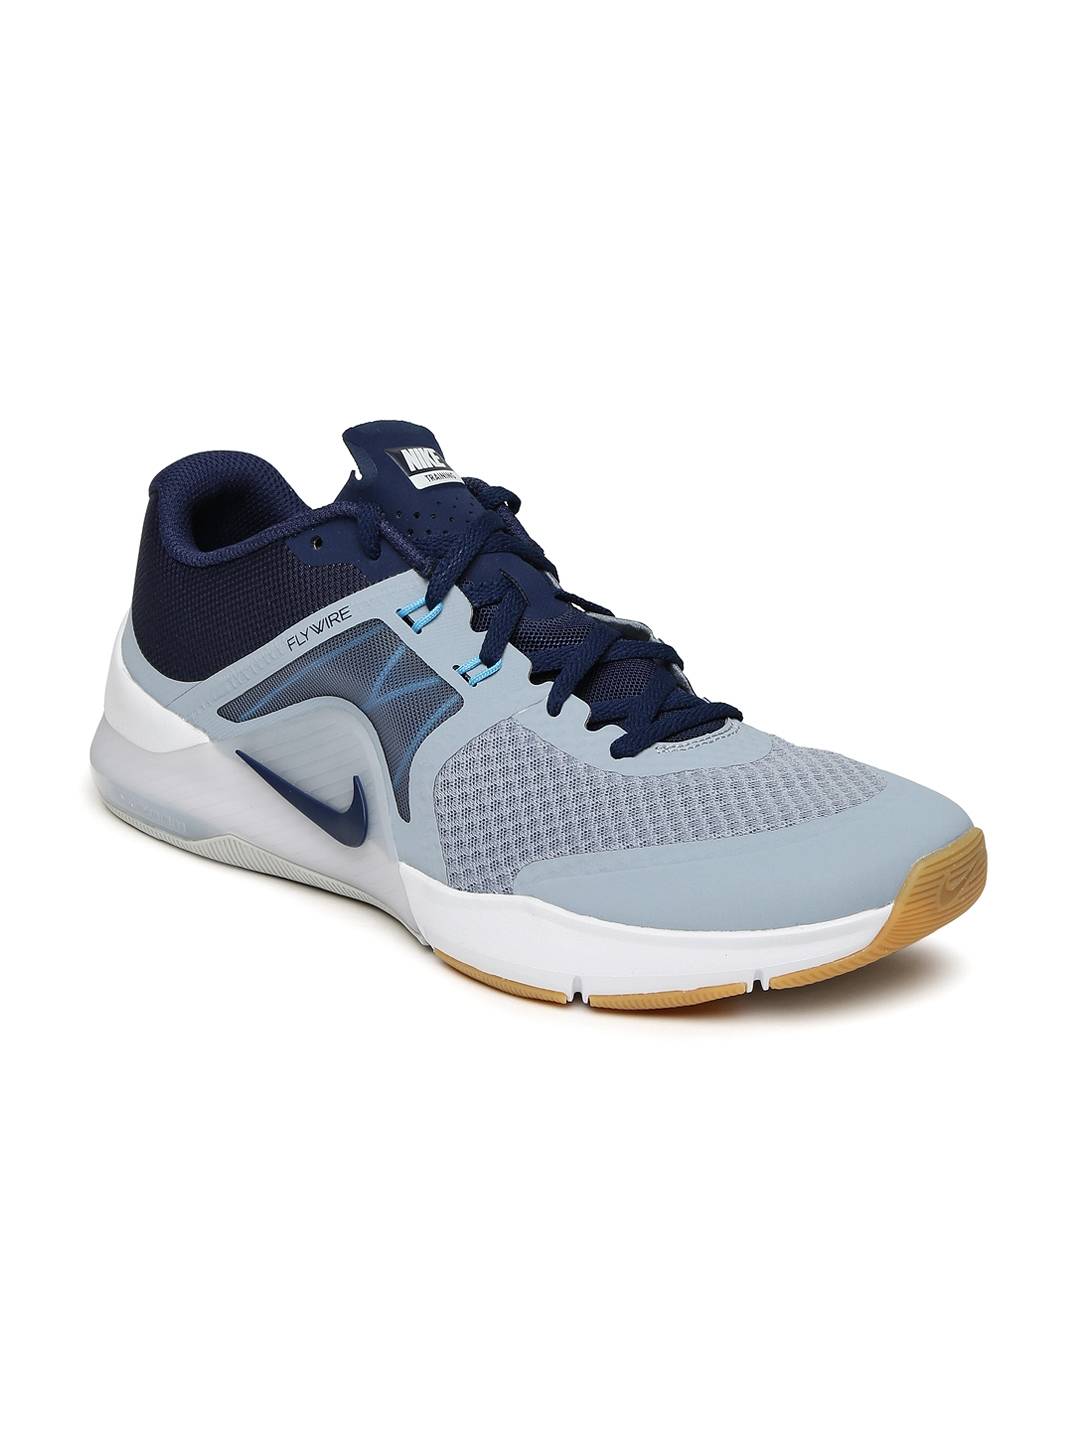 899a54465bb78 Buy Nike Men Grey   Navy ZOOM TRAIN COMPLETE 2 Training Shoes ...